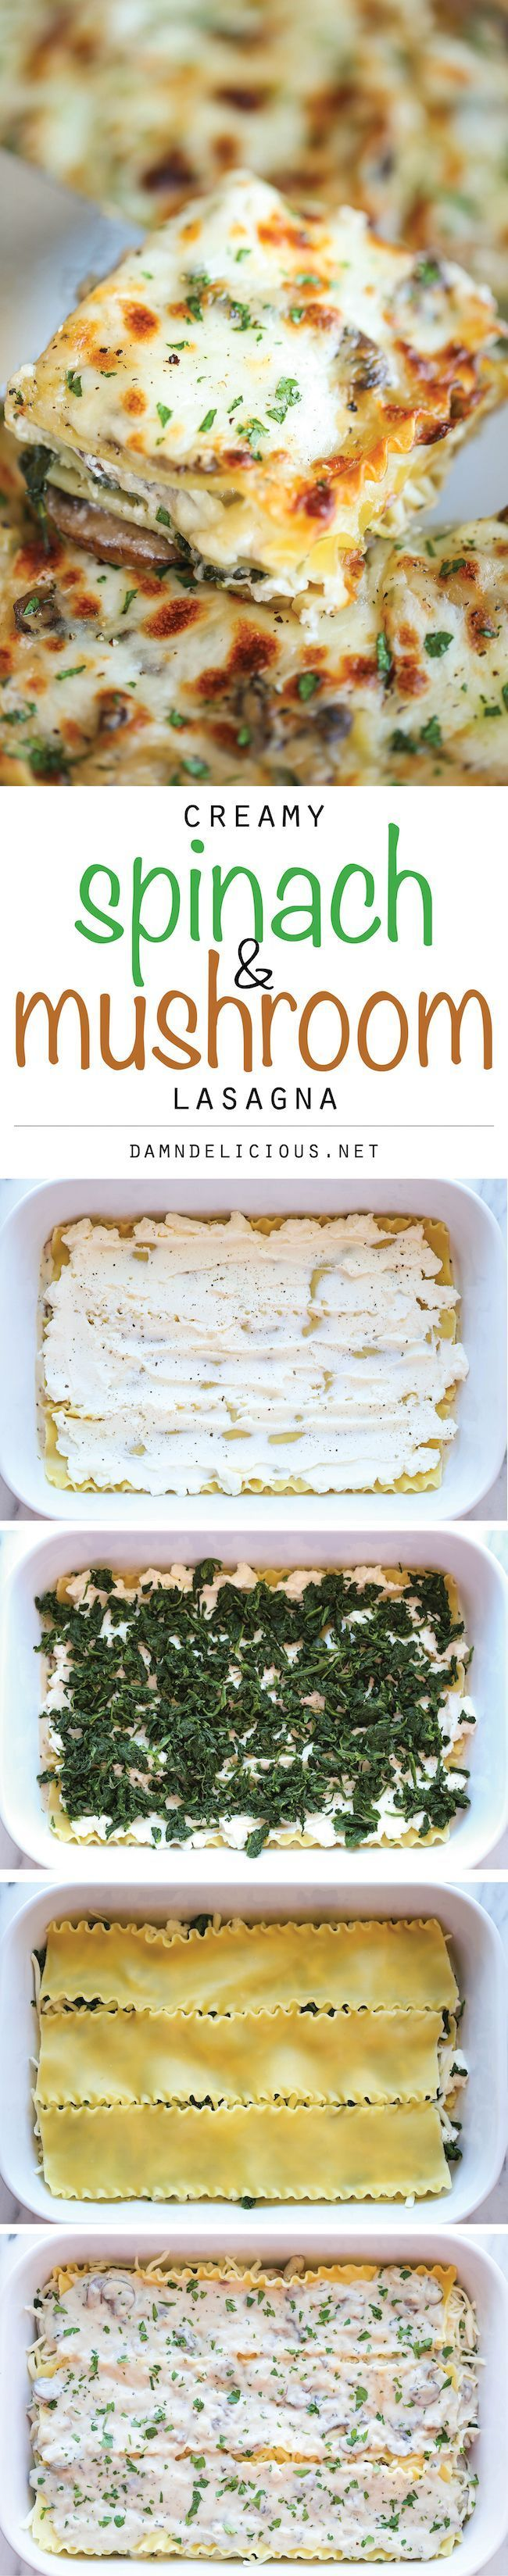 Creamy Spinach and Mushroom Lasagna | Nosh-up #foodie #goodeats